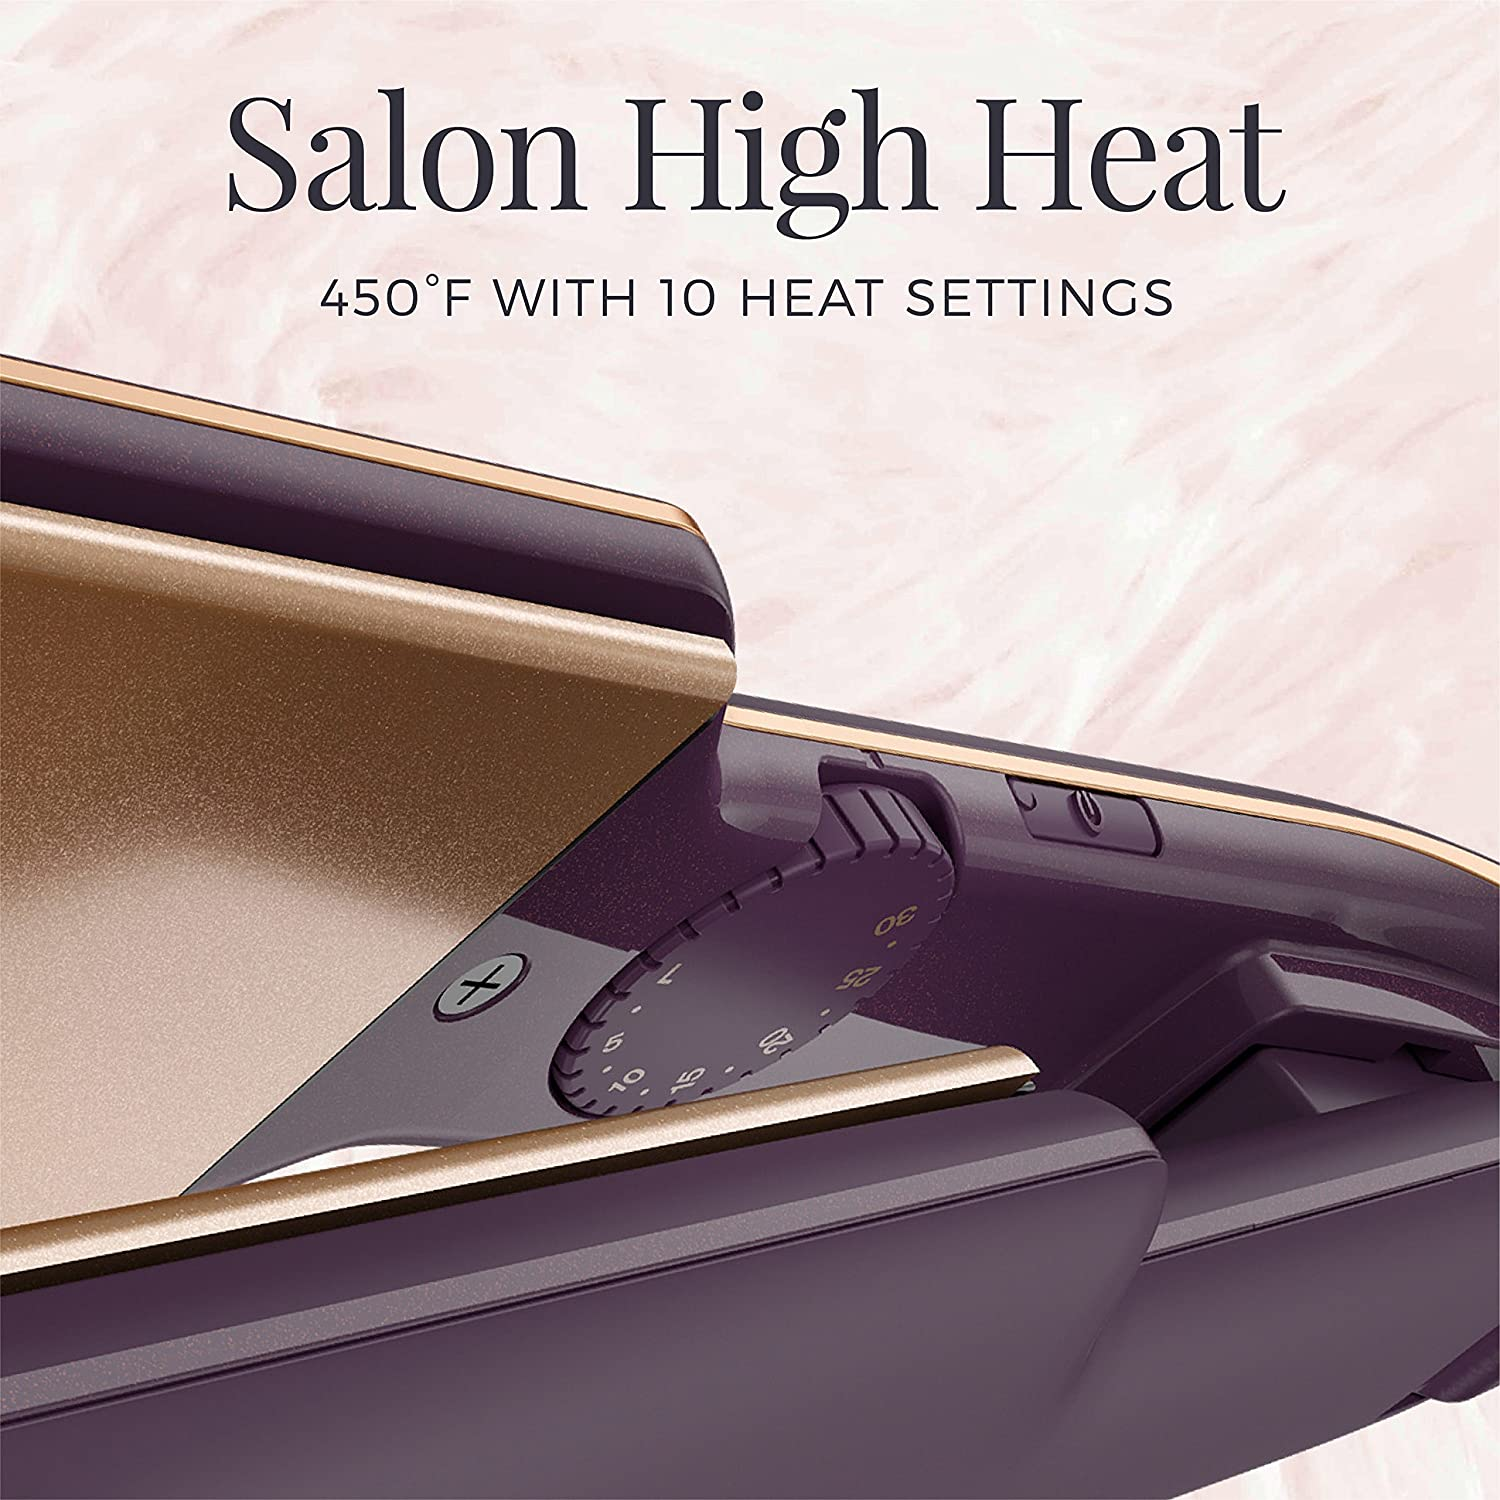 Remington 2 Flat Iron with Thermaluxe Advanced Thermal Technology, Purple, S9130S